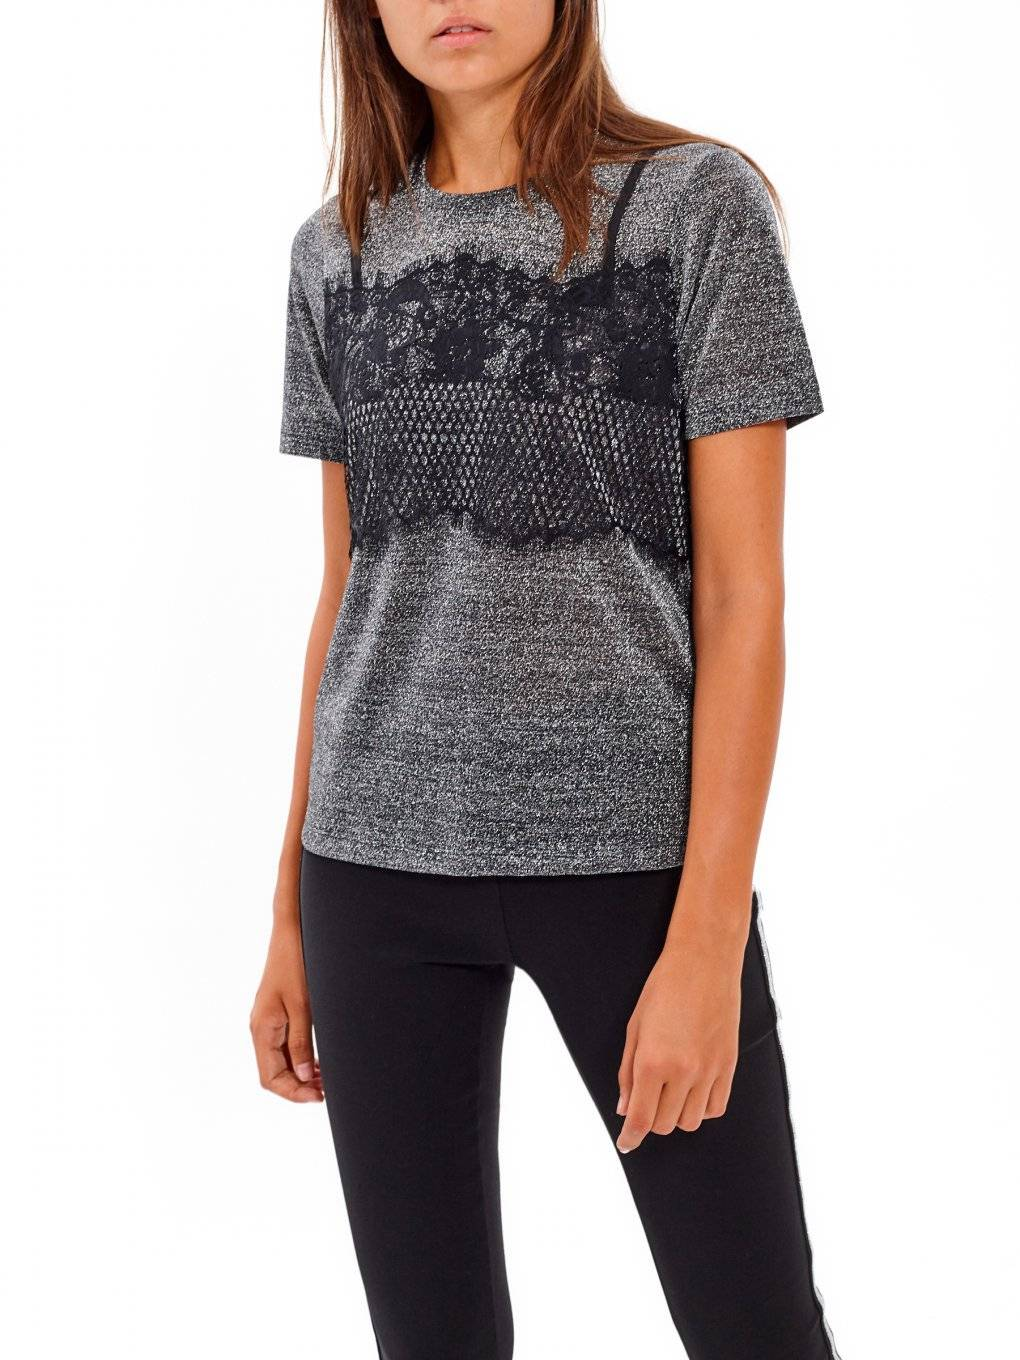 METALLIC TOP WITH LACE DETAIL